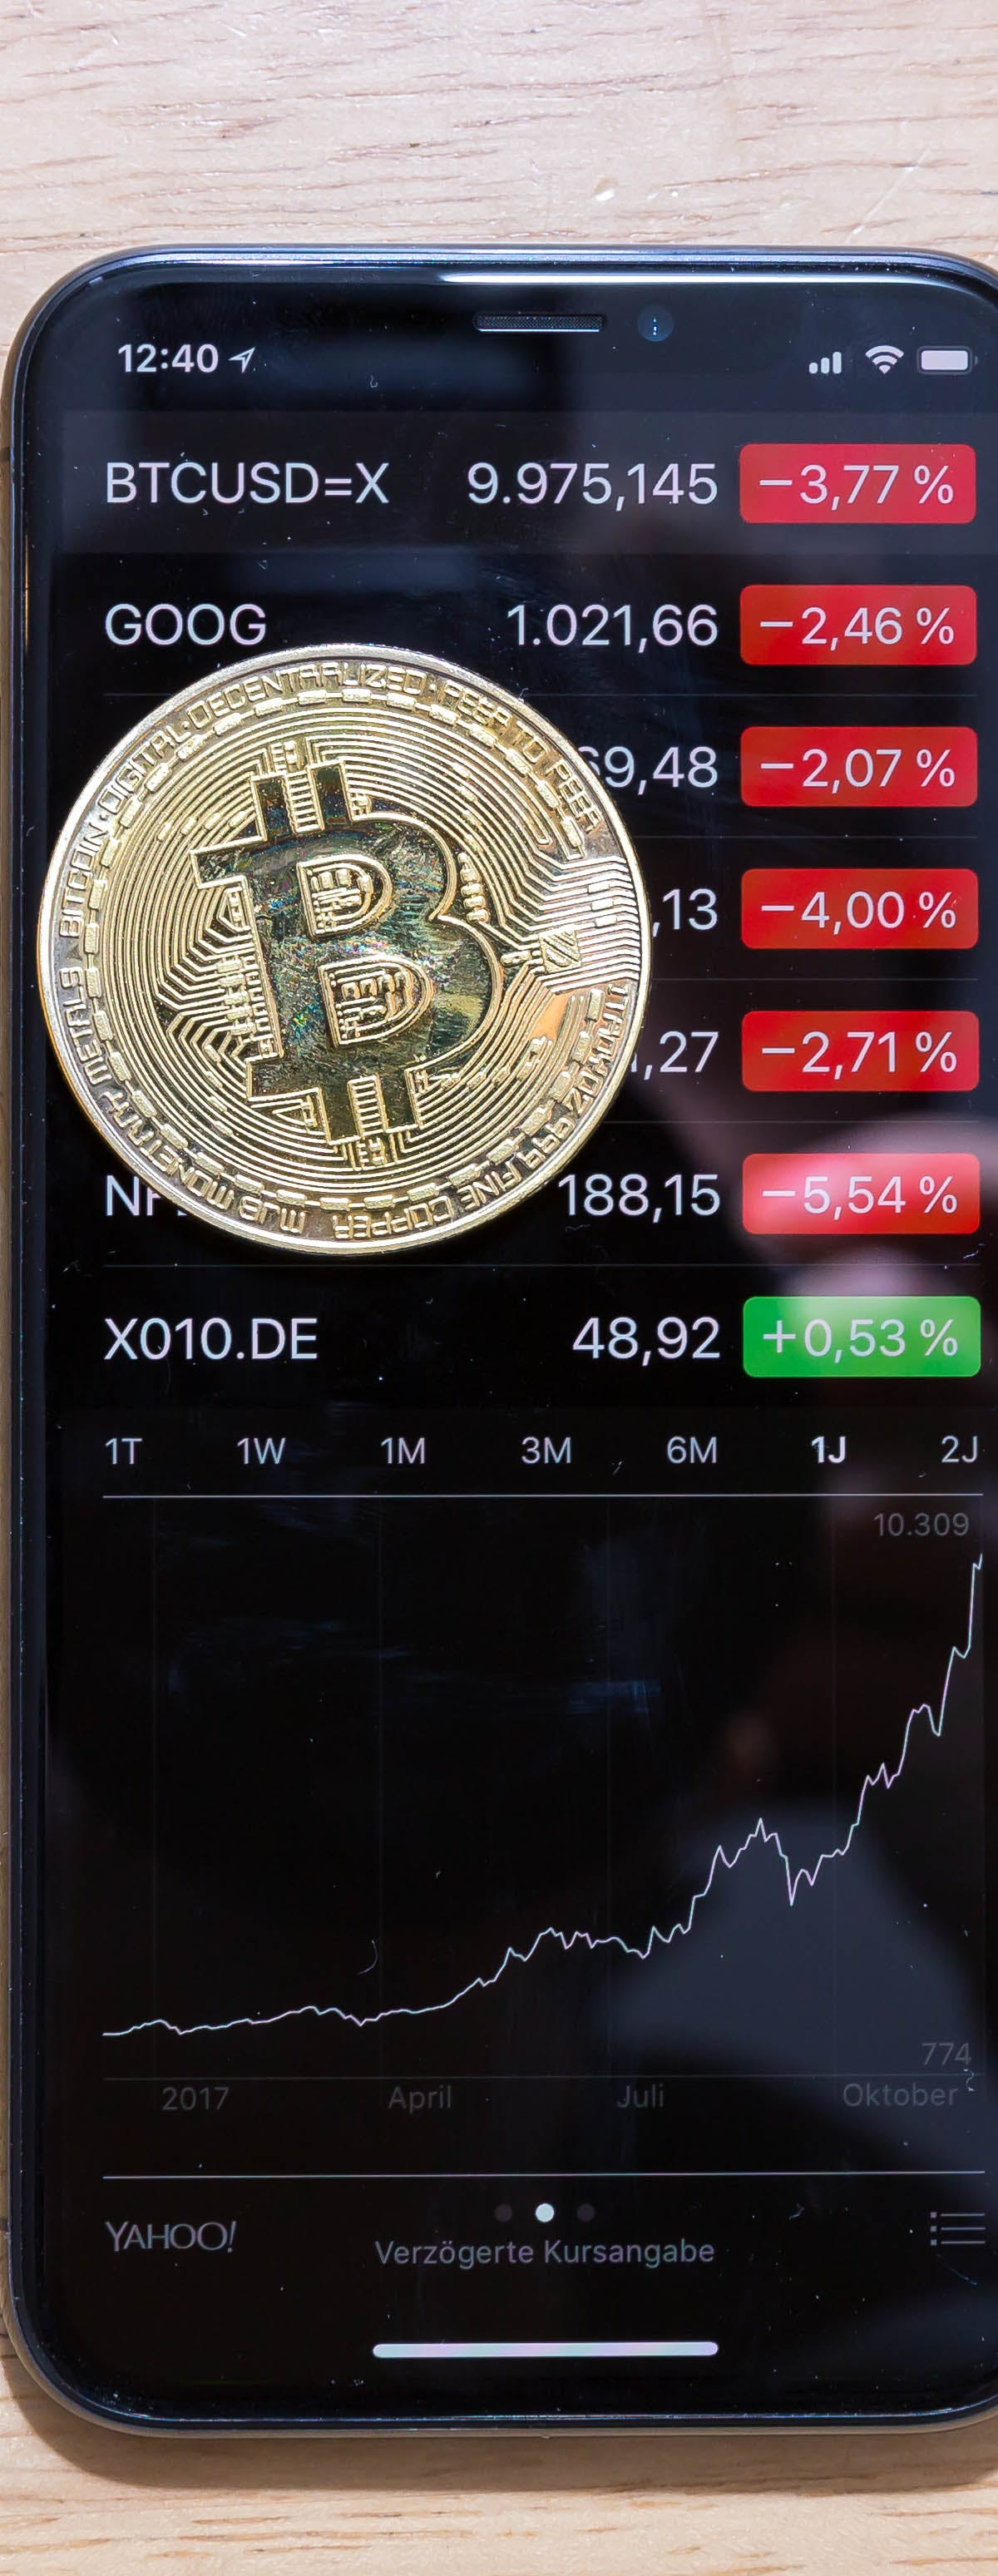 Cryptocurrency on iPhone? Apple Could Solve One of Its Biggest Problems